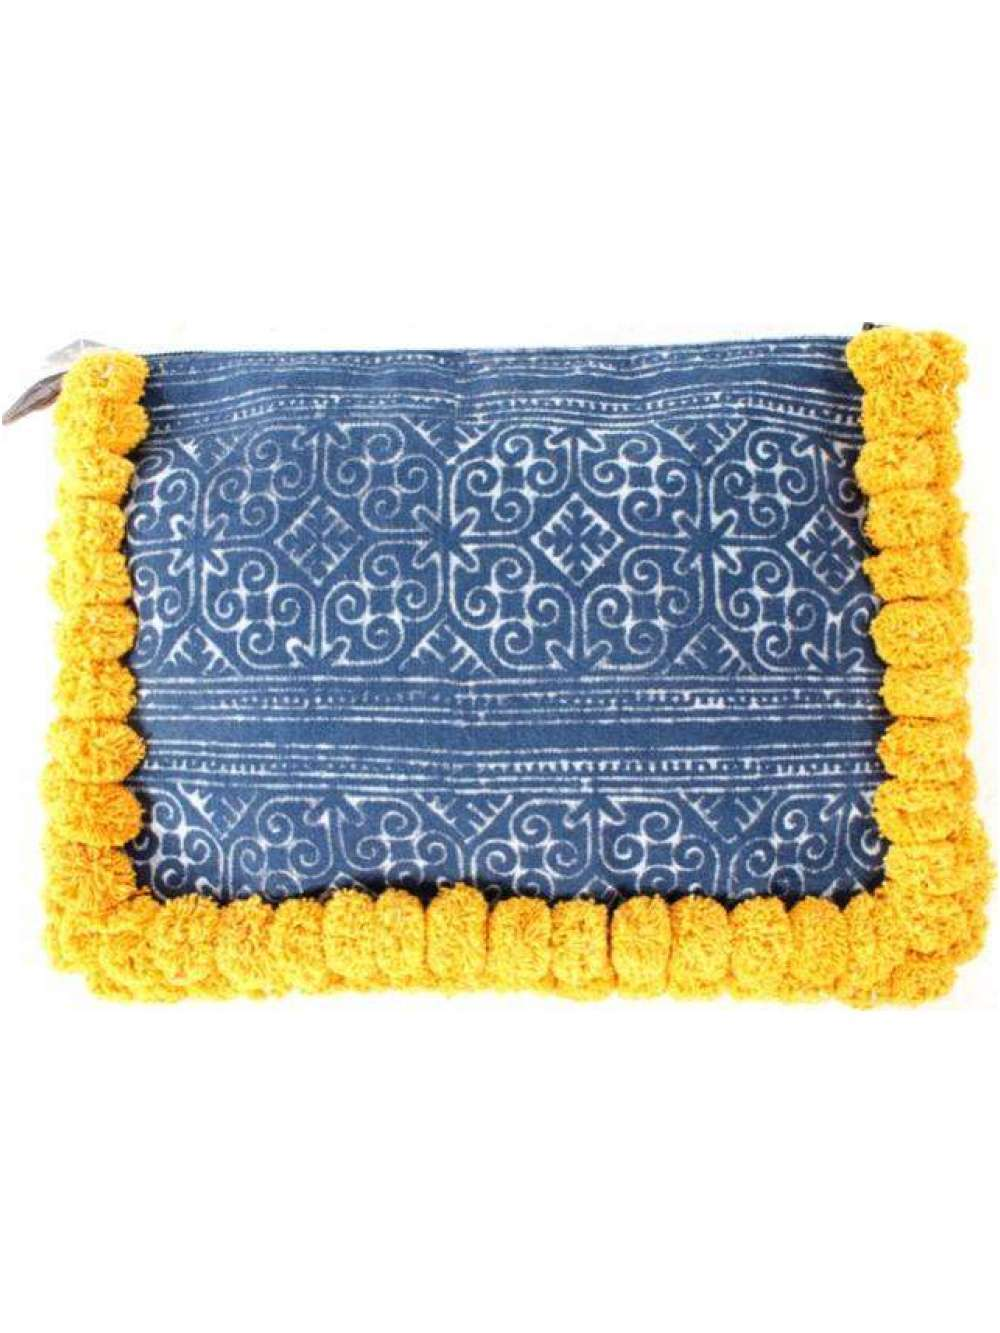 Batik Oversized Clutch with Yellow Pom Poms